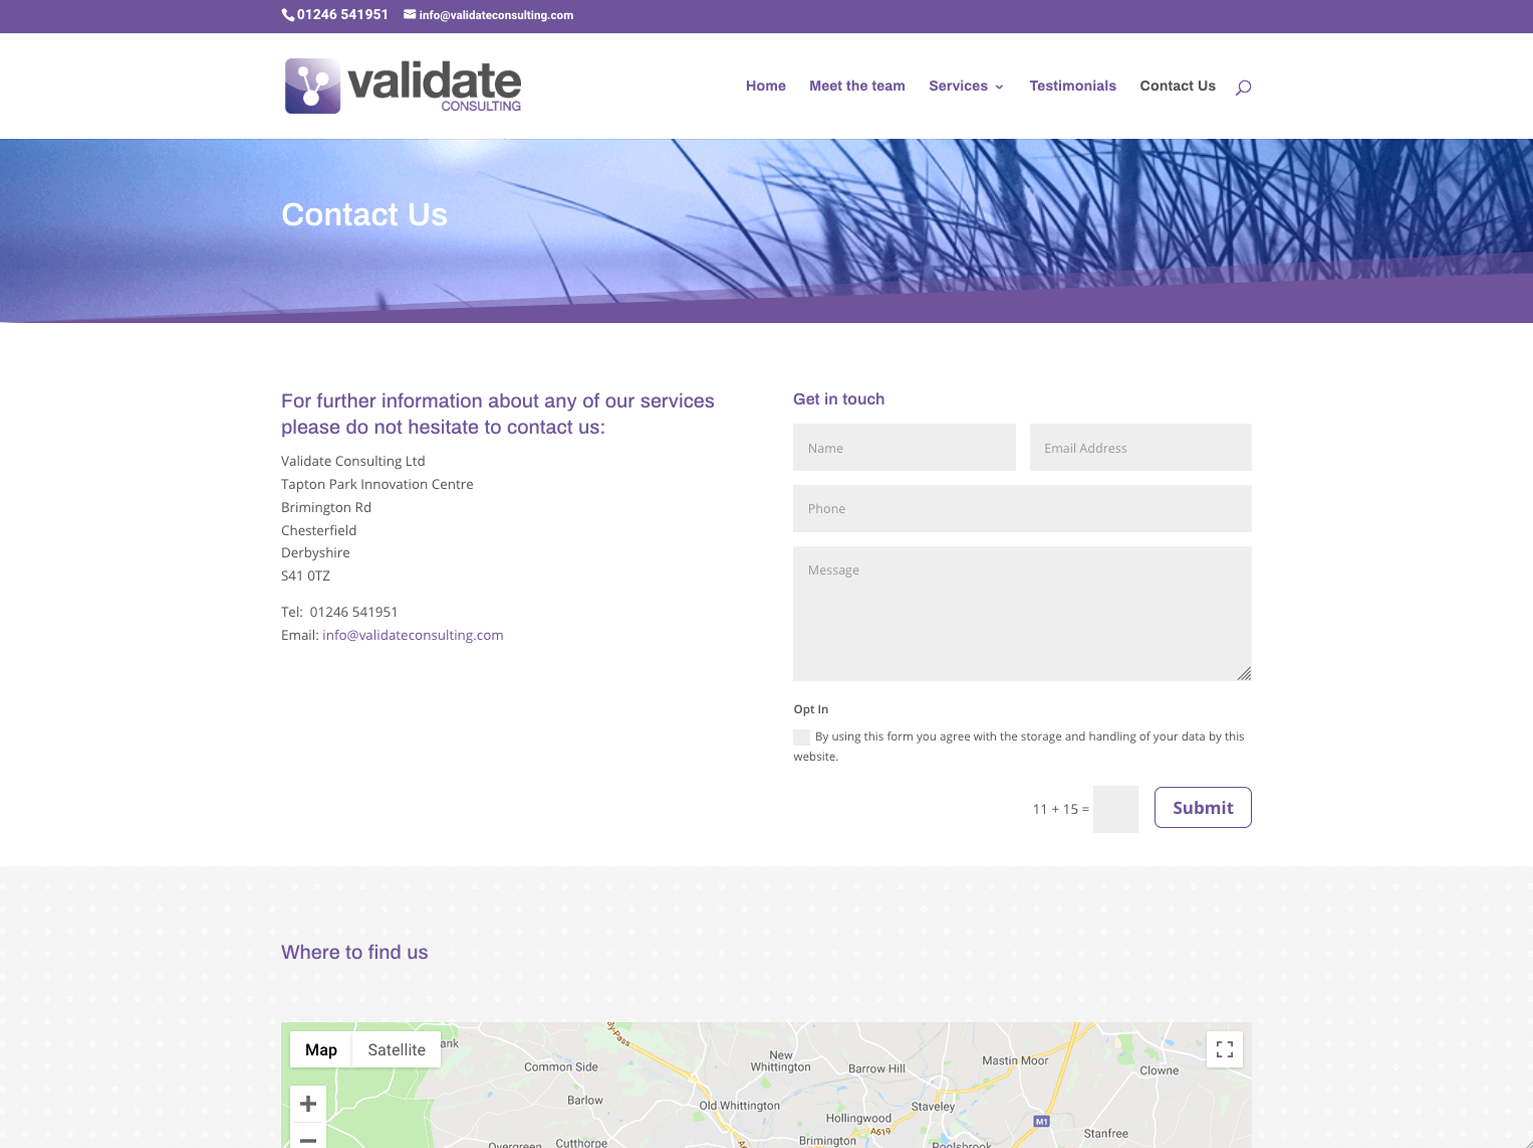 Validate Consulting Chesterfield contact page